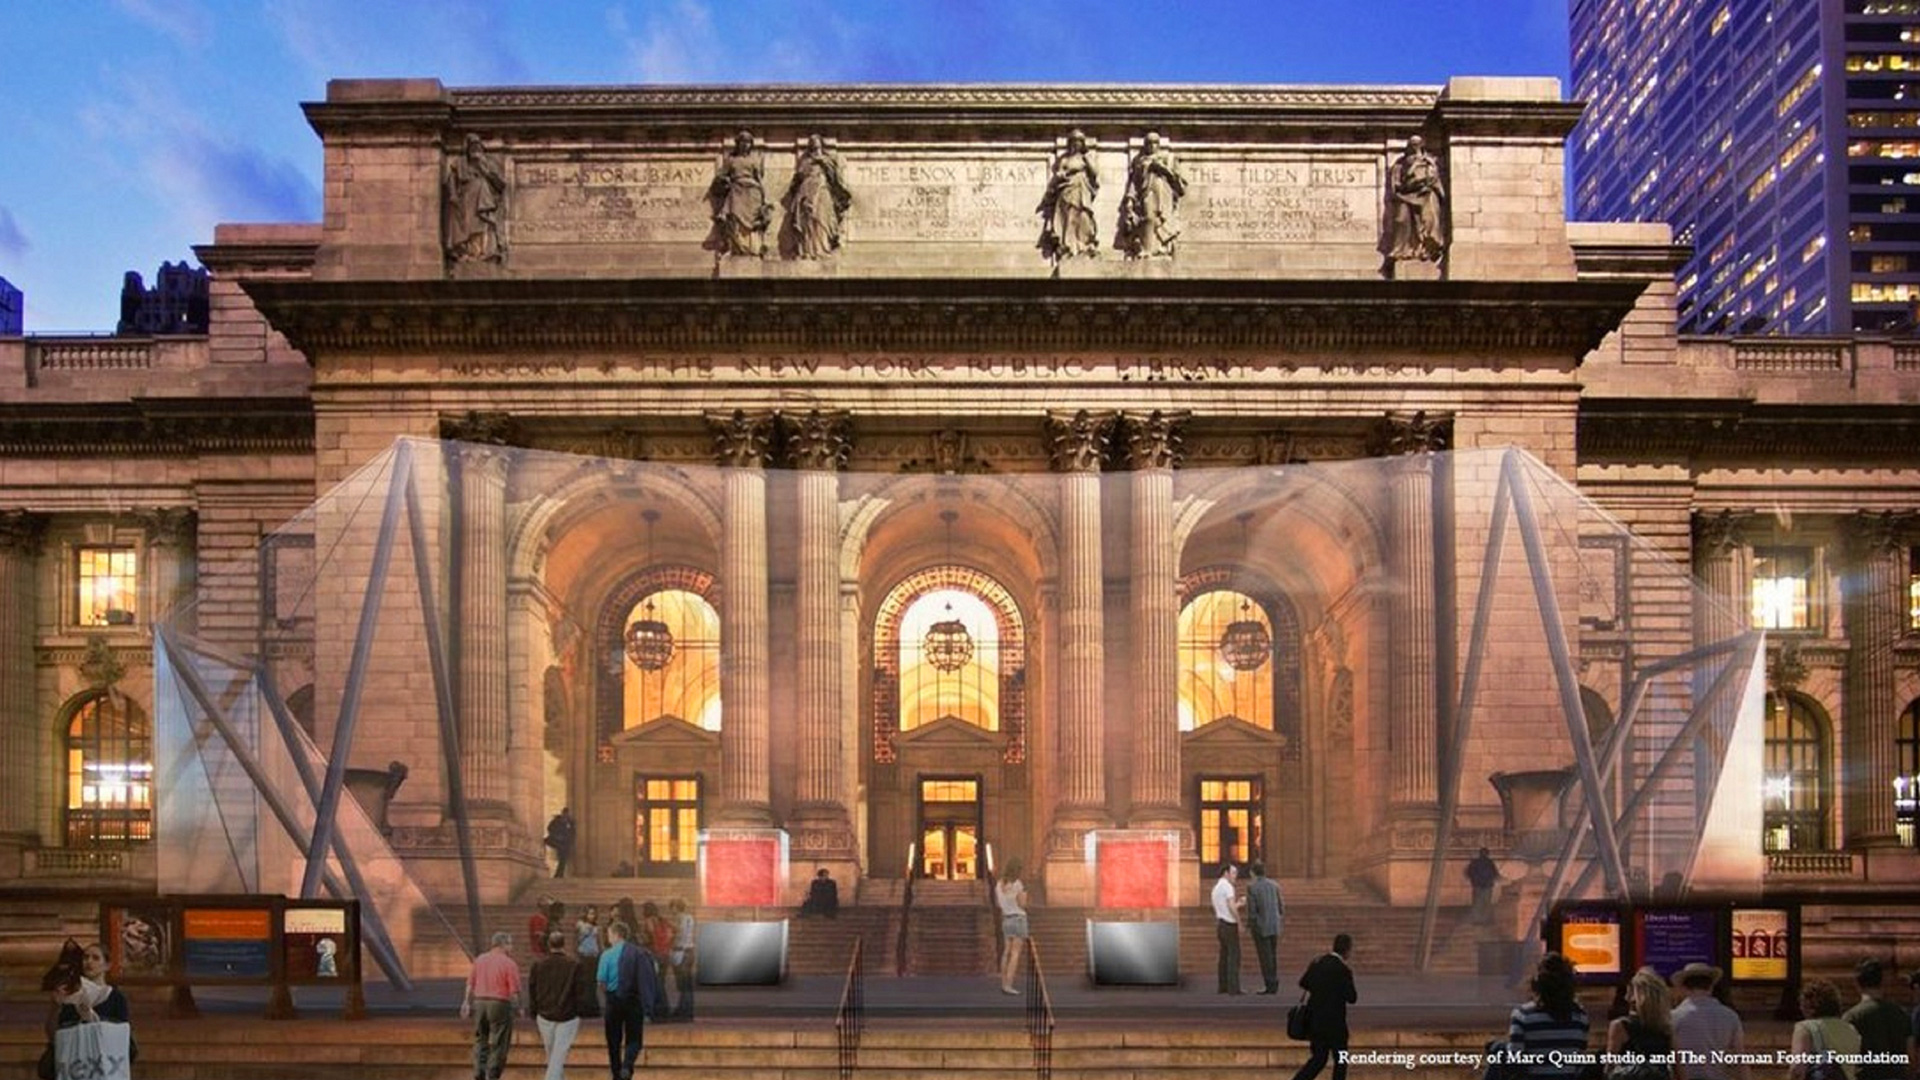 The proposed site for Our Blood by Marc Quinn that will be hosted at the public library at the Stephen A. Schwarzman building in New York in 2021 | Our Blood | Marc Quinn | STIRworld